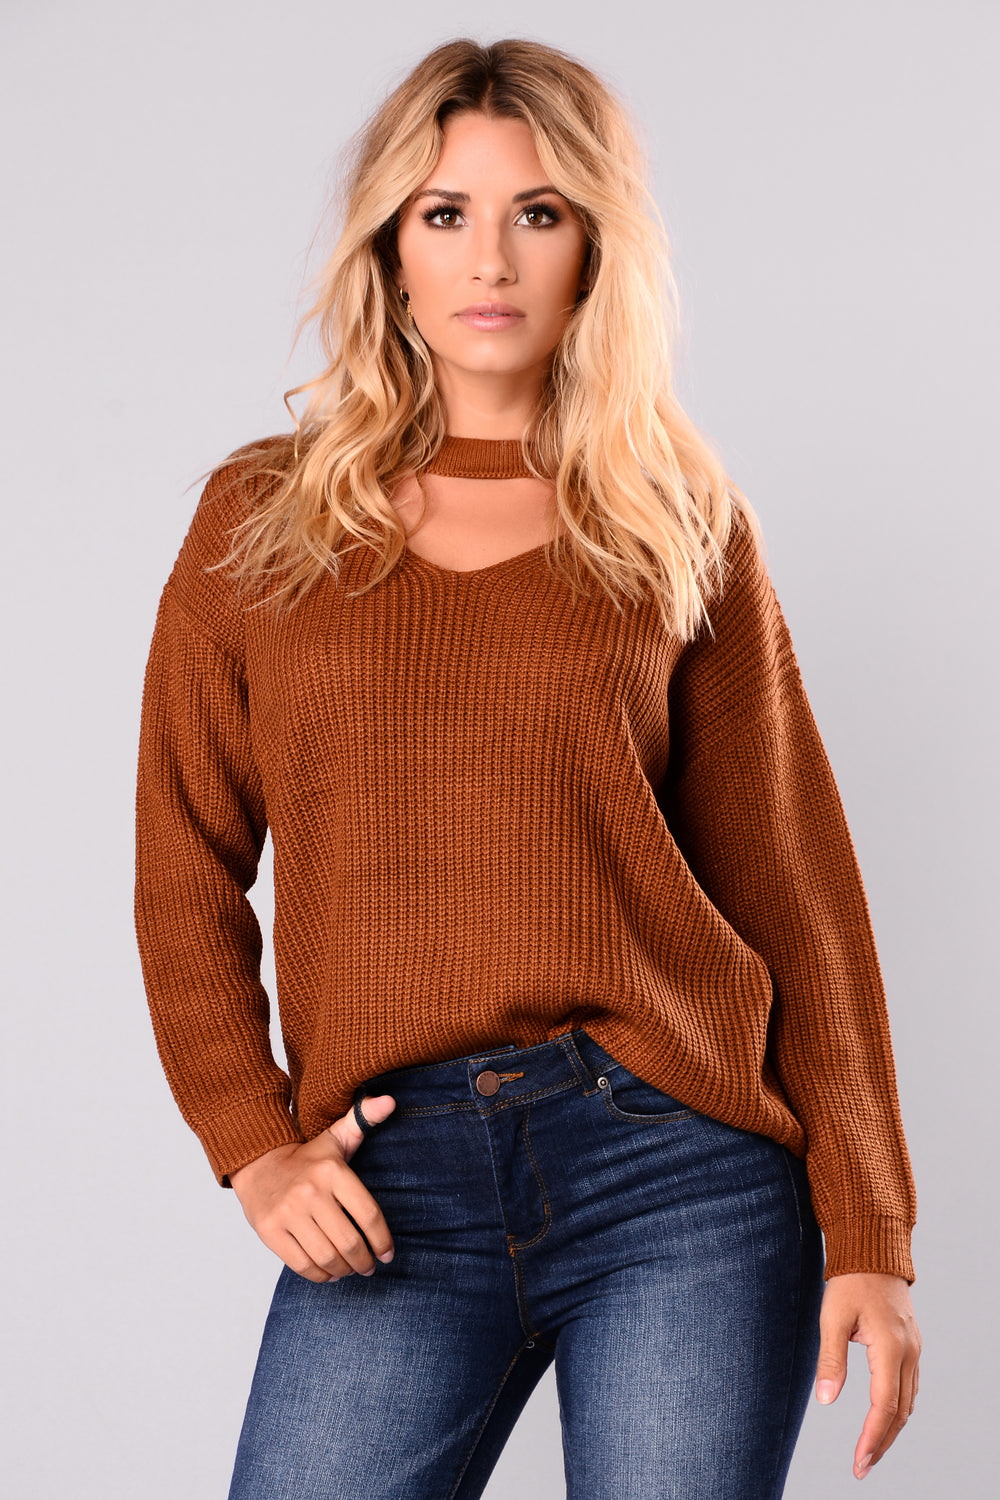 Do It Again Sweater - Camel